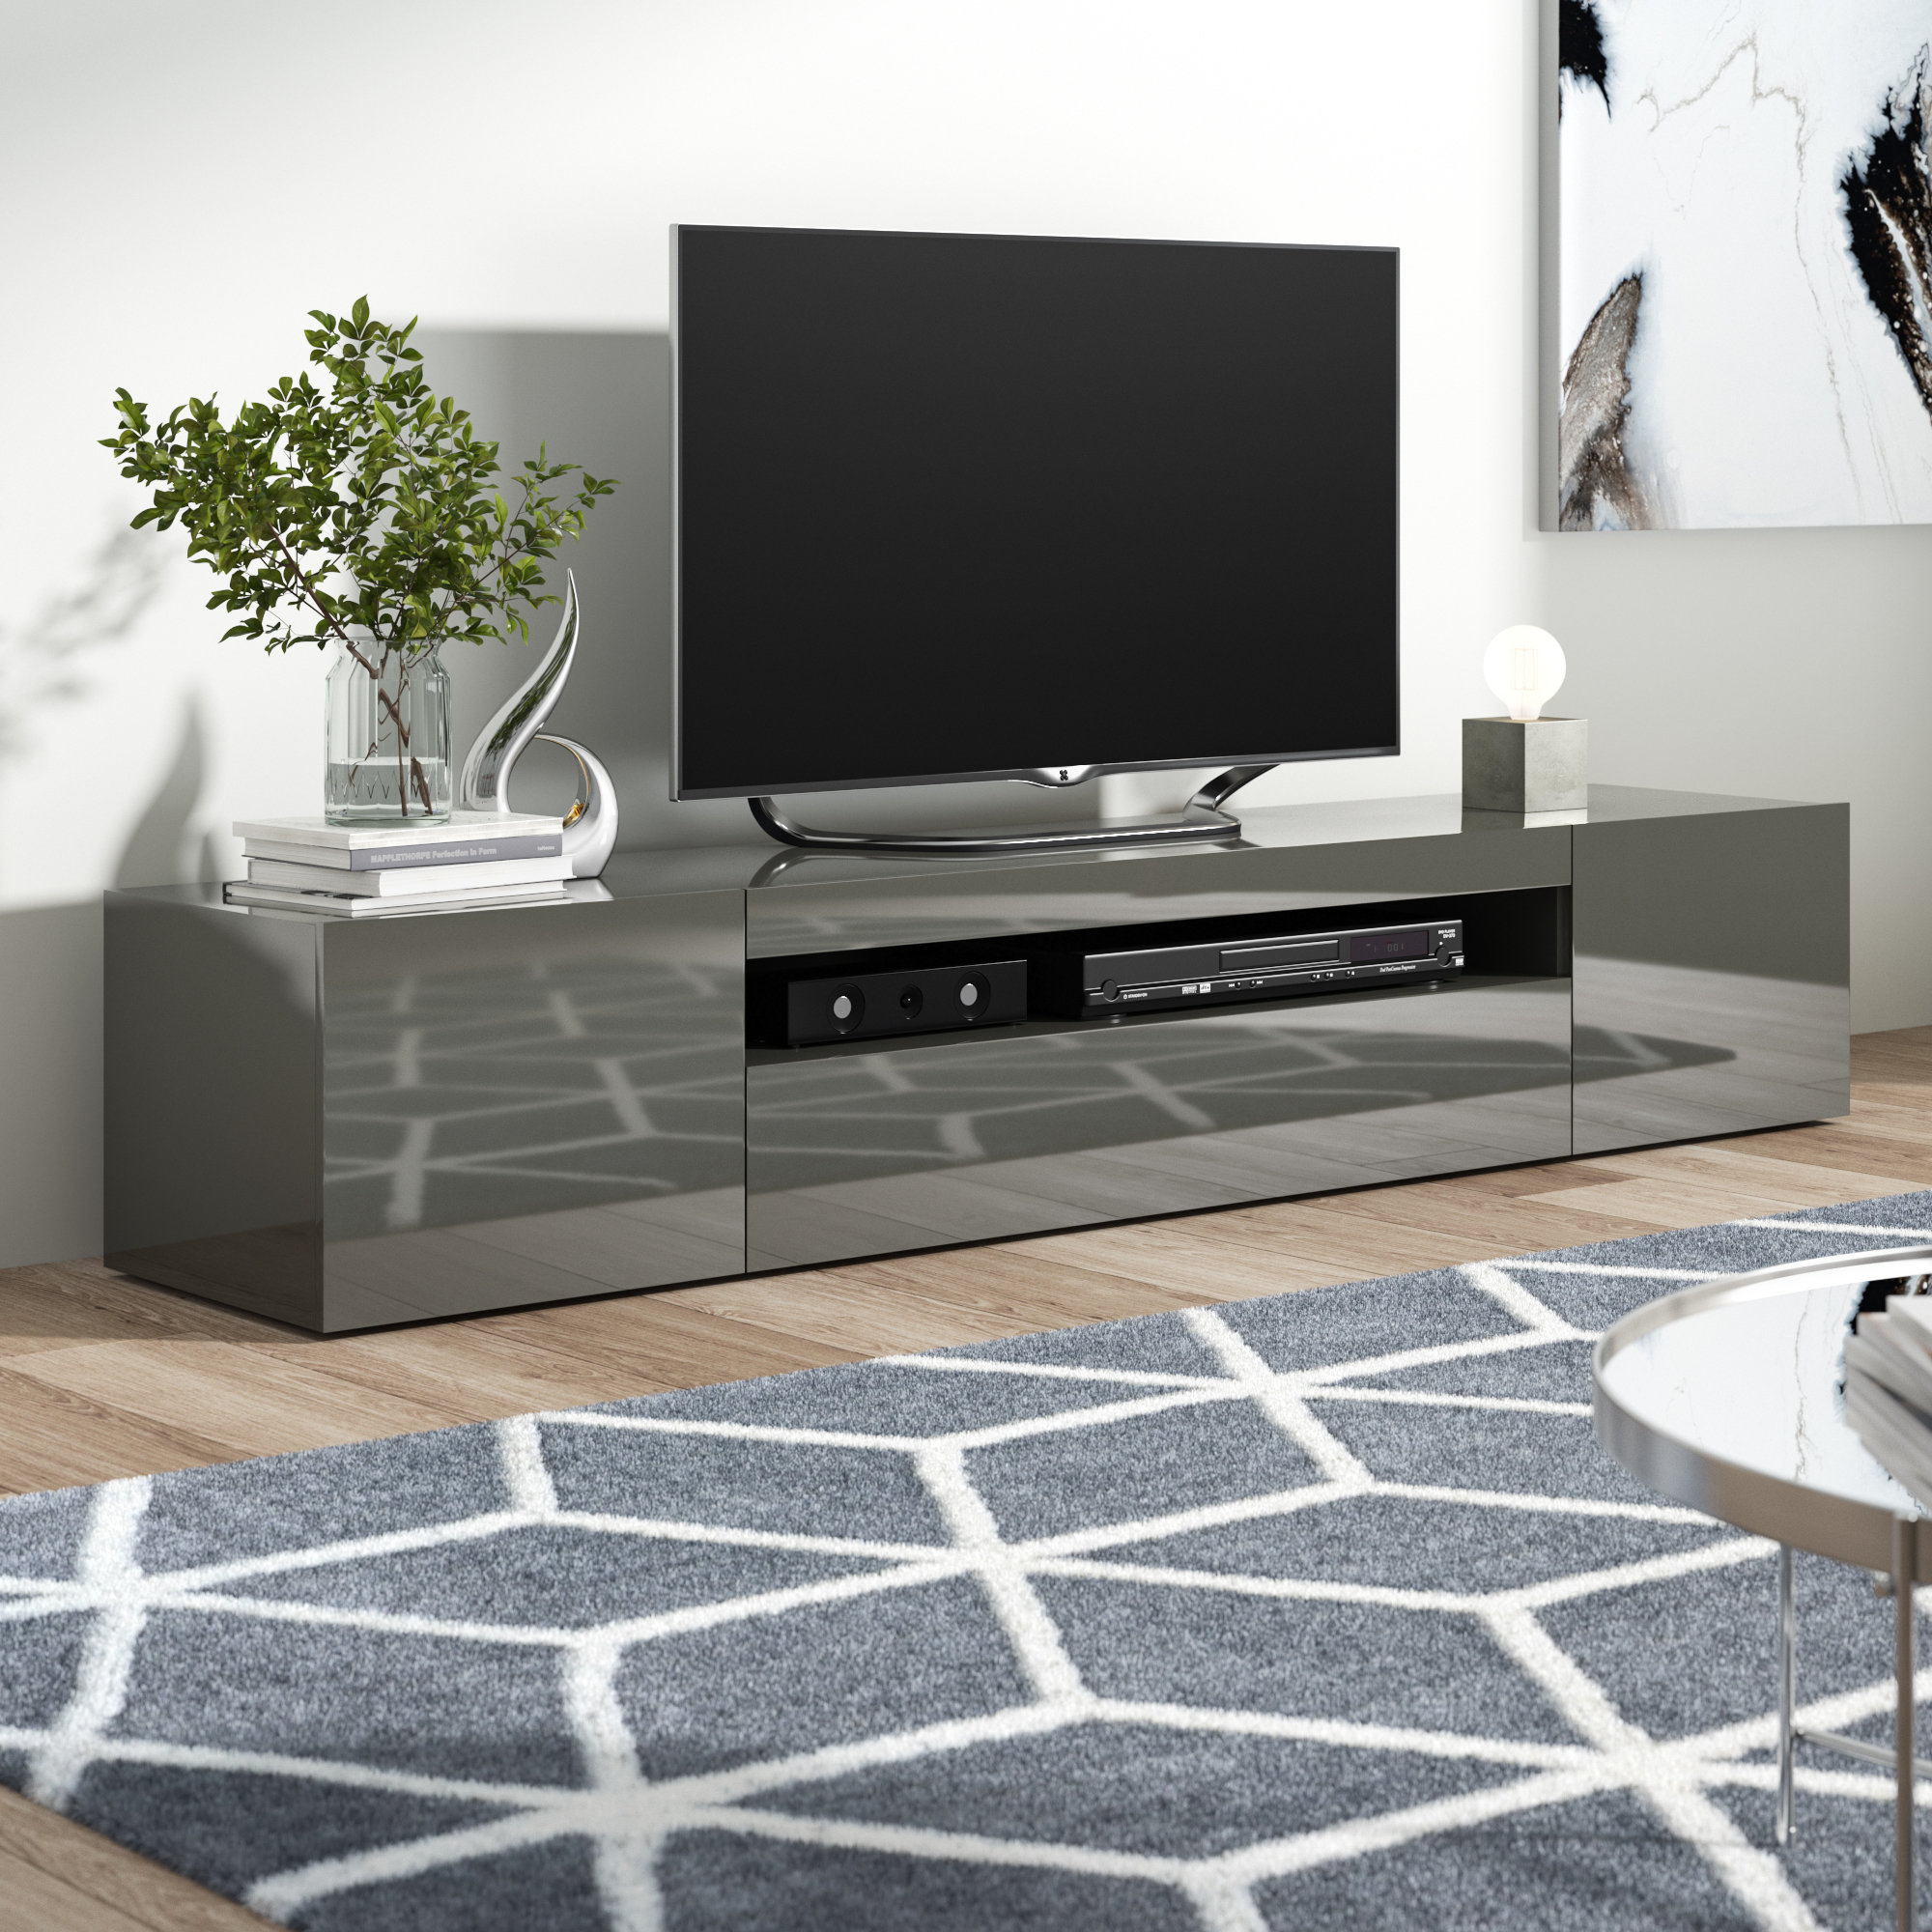 Mirrored Tv Stand | Wayfair.co.uk within Natural Wood Mirrored Media Console Tables (Image 18 of 30)